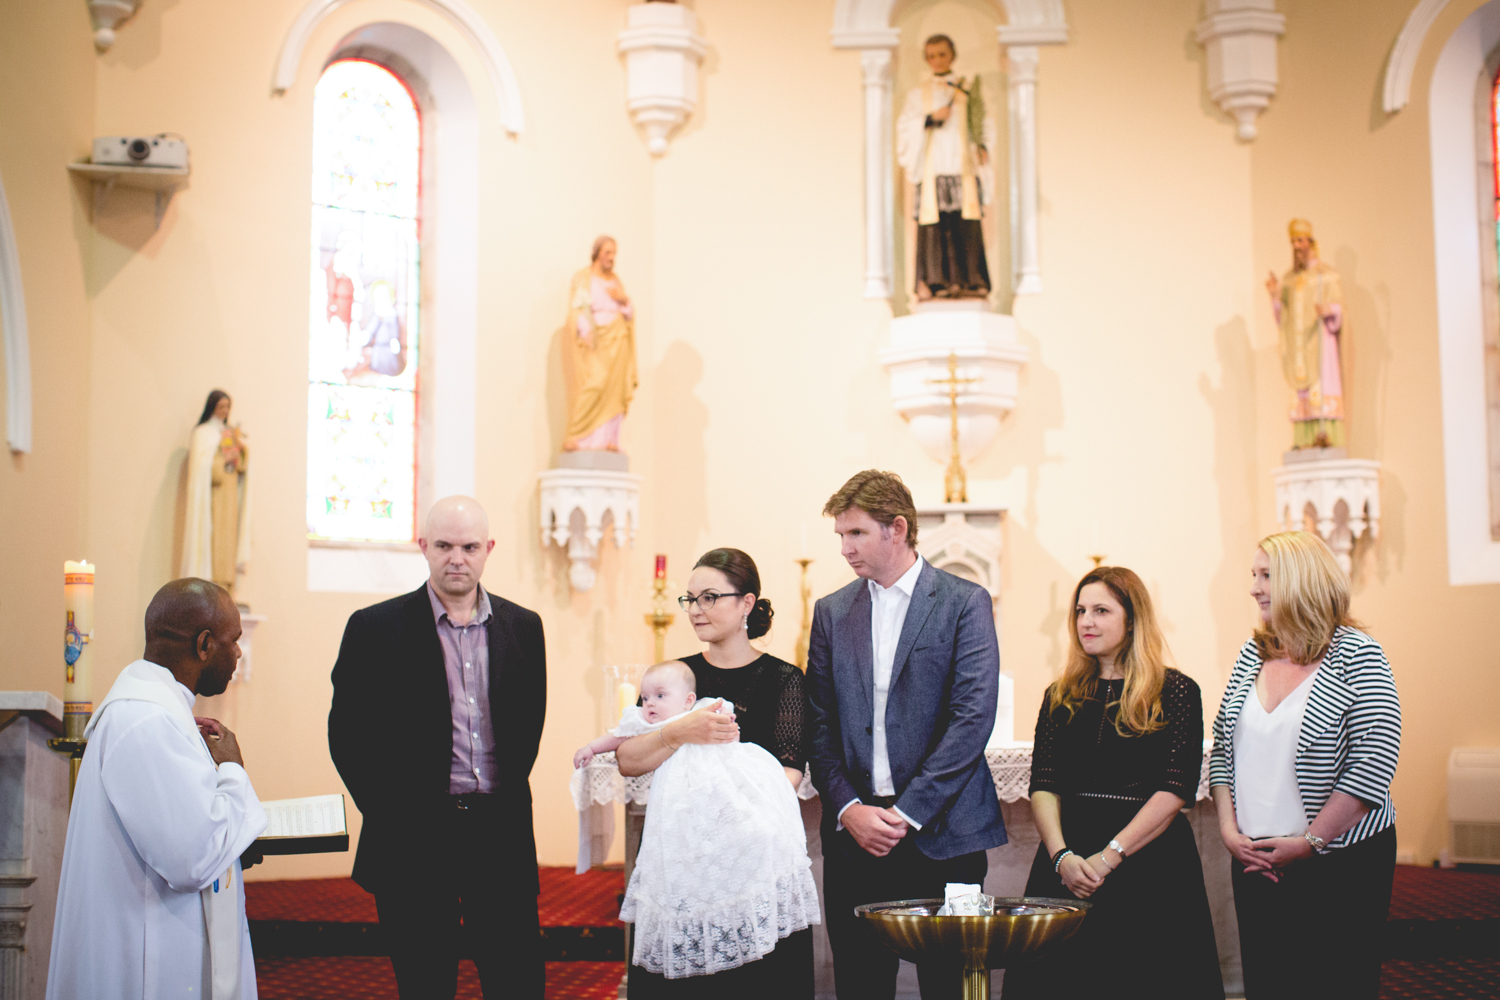 st_peter_chanel_hunters_hill_christening39.jpeg